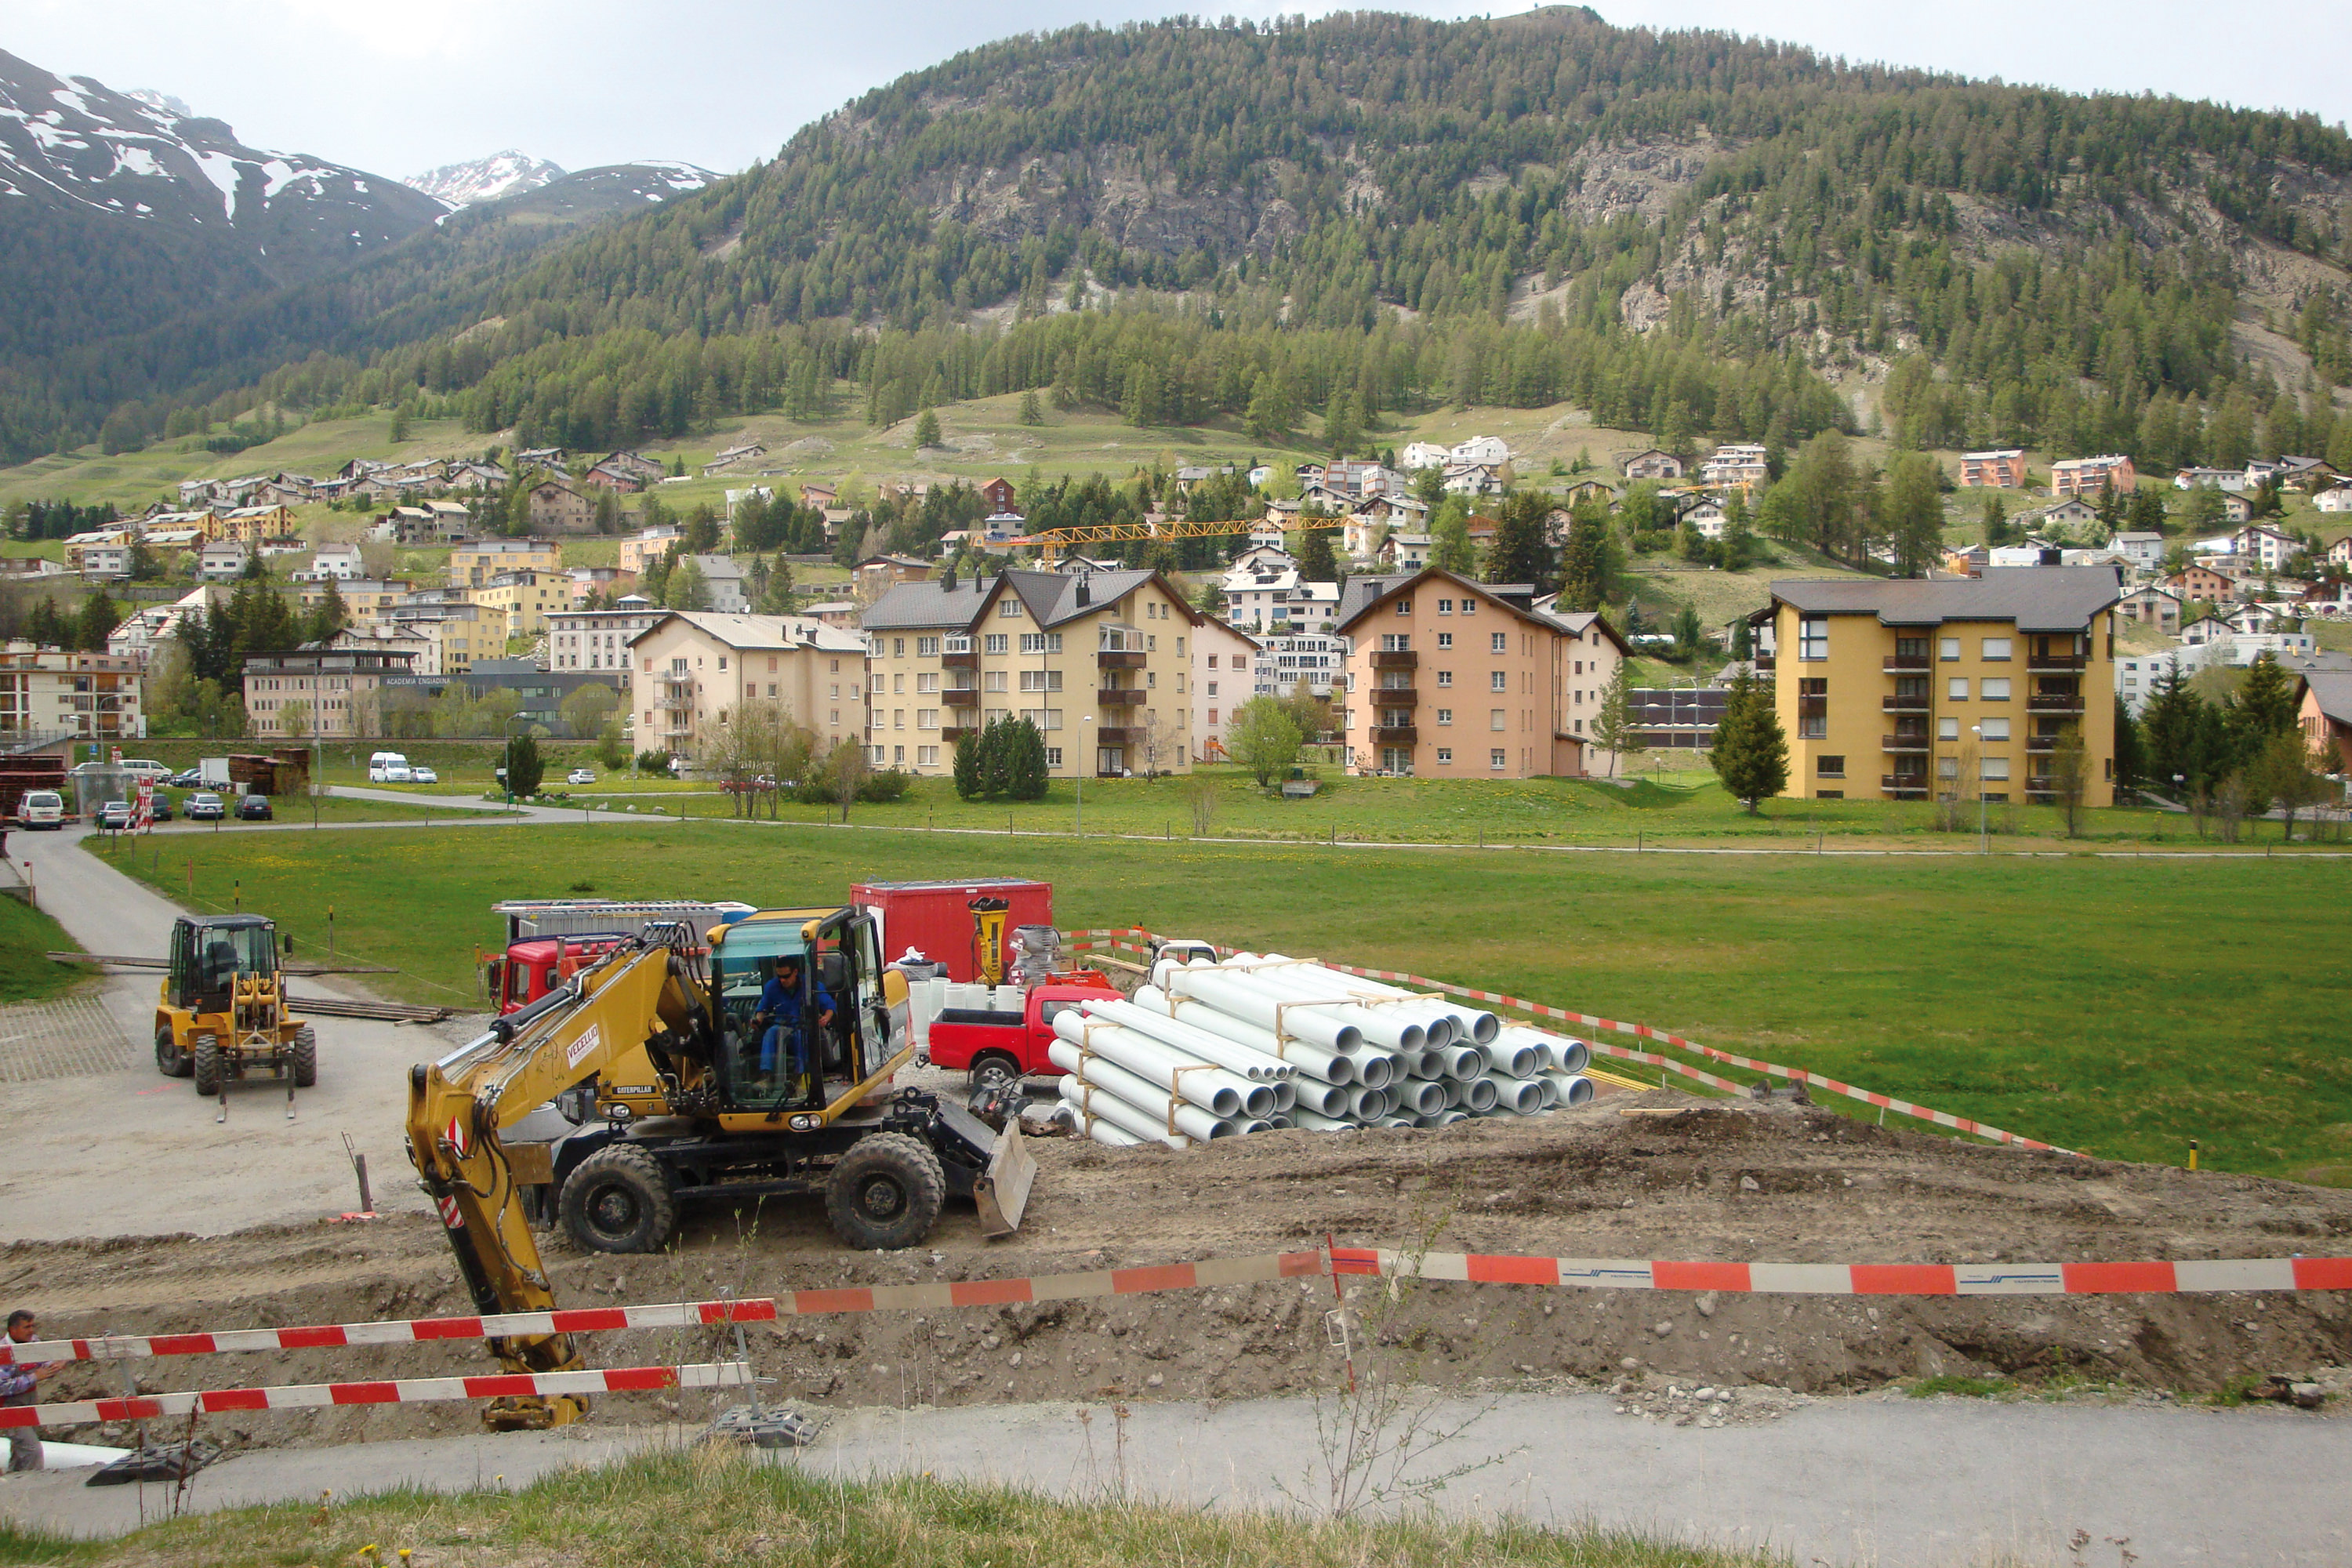 Fusion drainage systems between Samedan and S-chanf